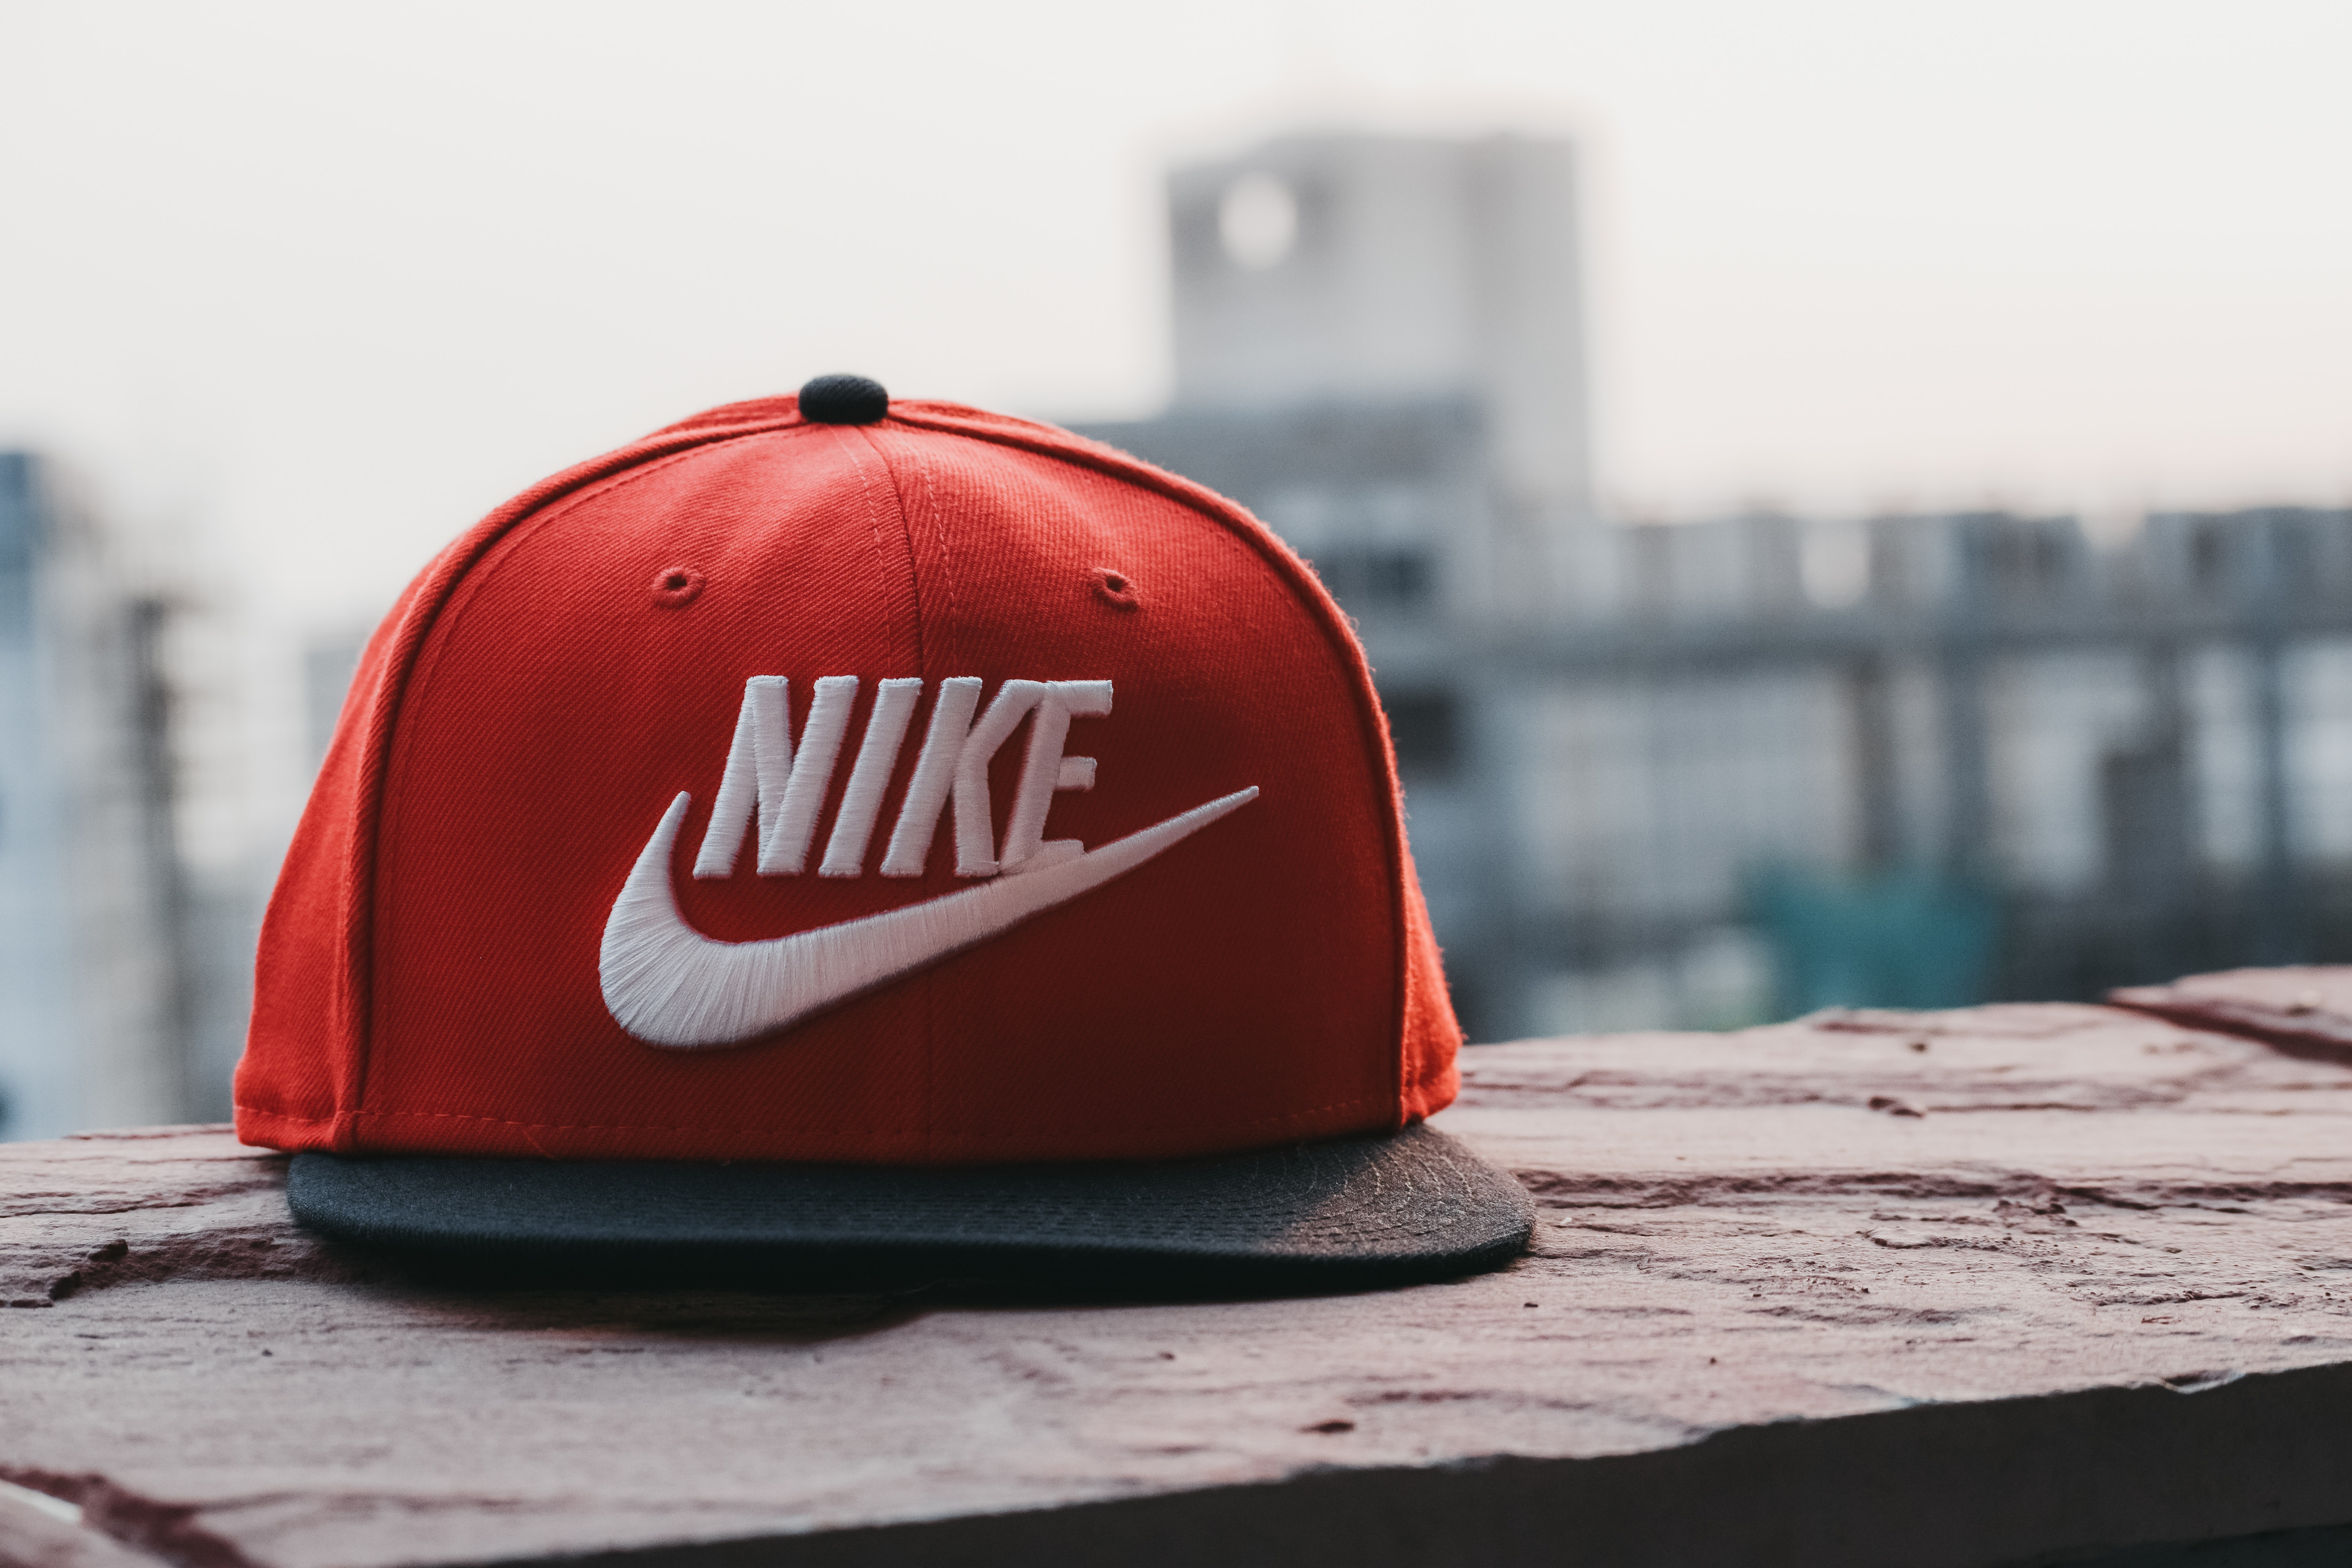 Nike Announces Dates For Quarterly Dividend Payable in September